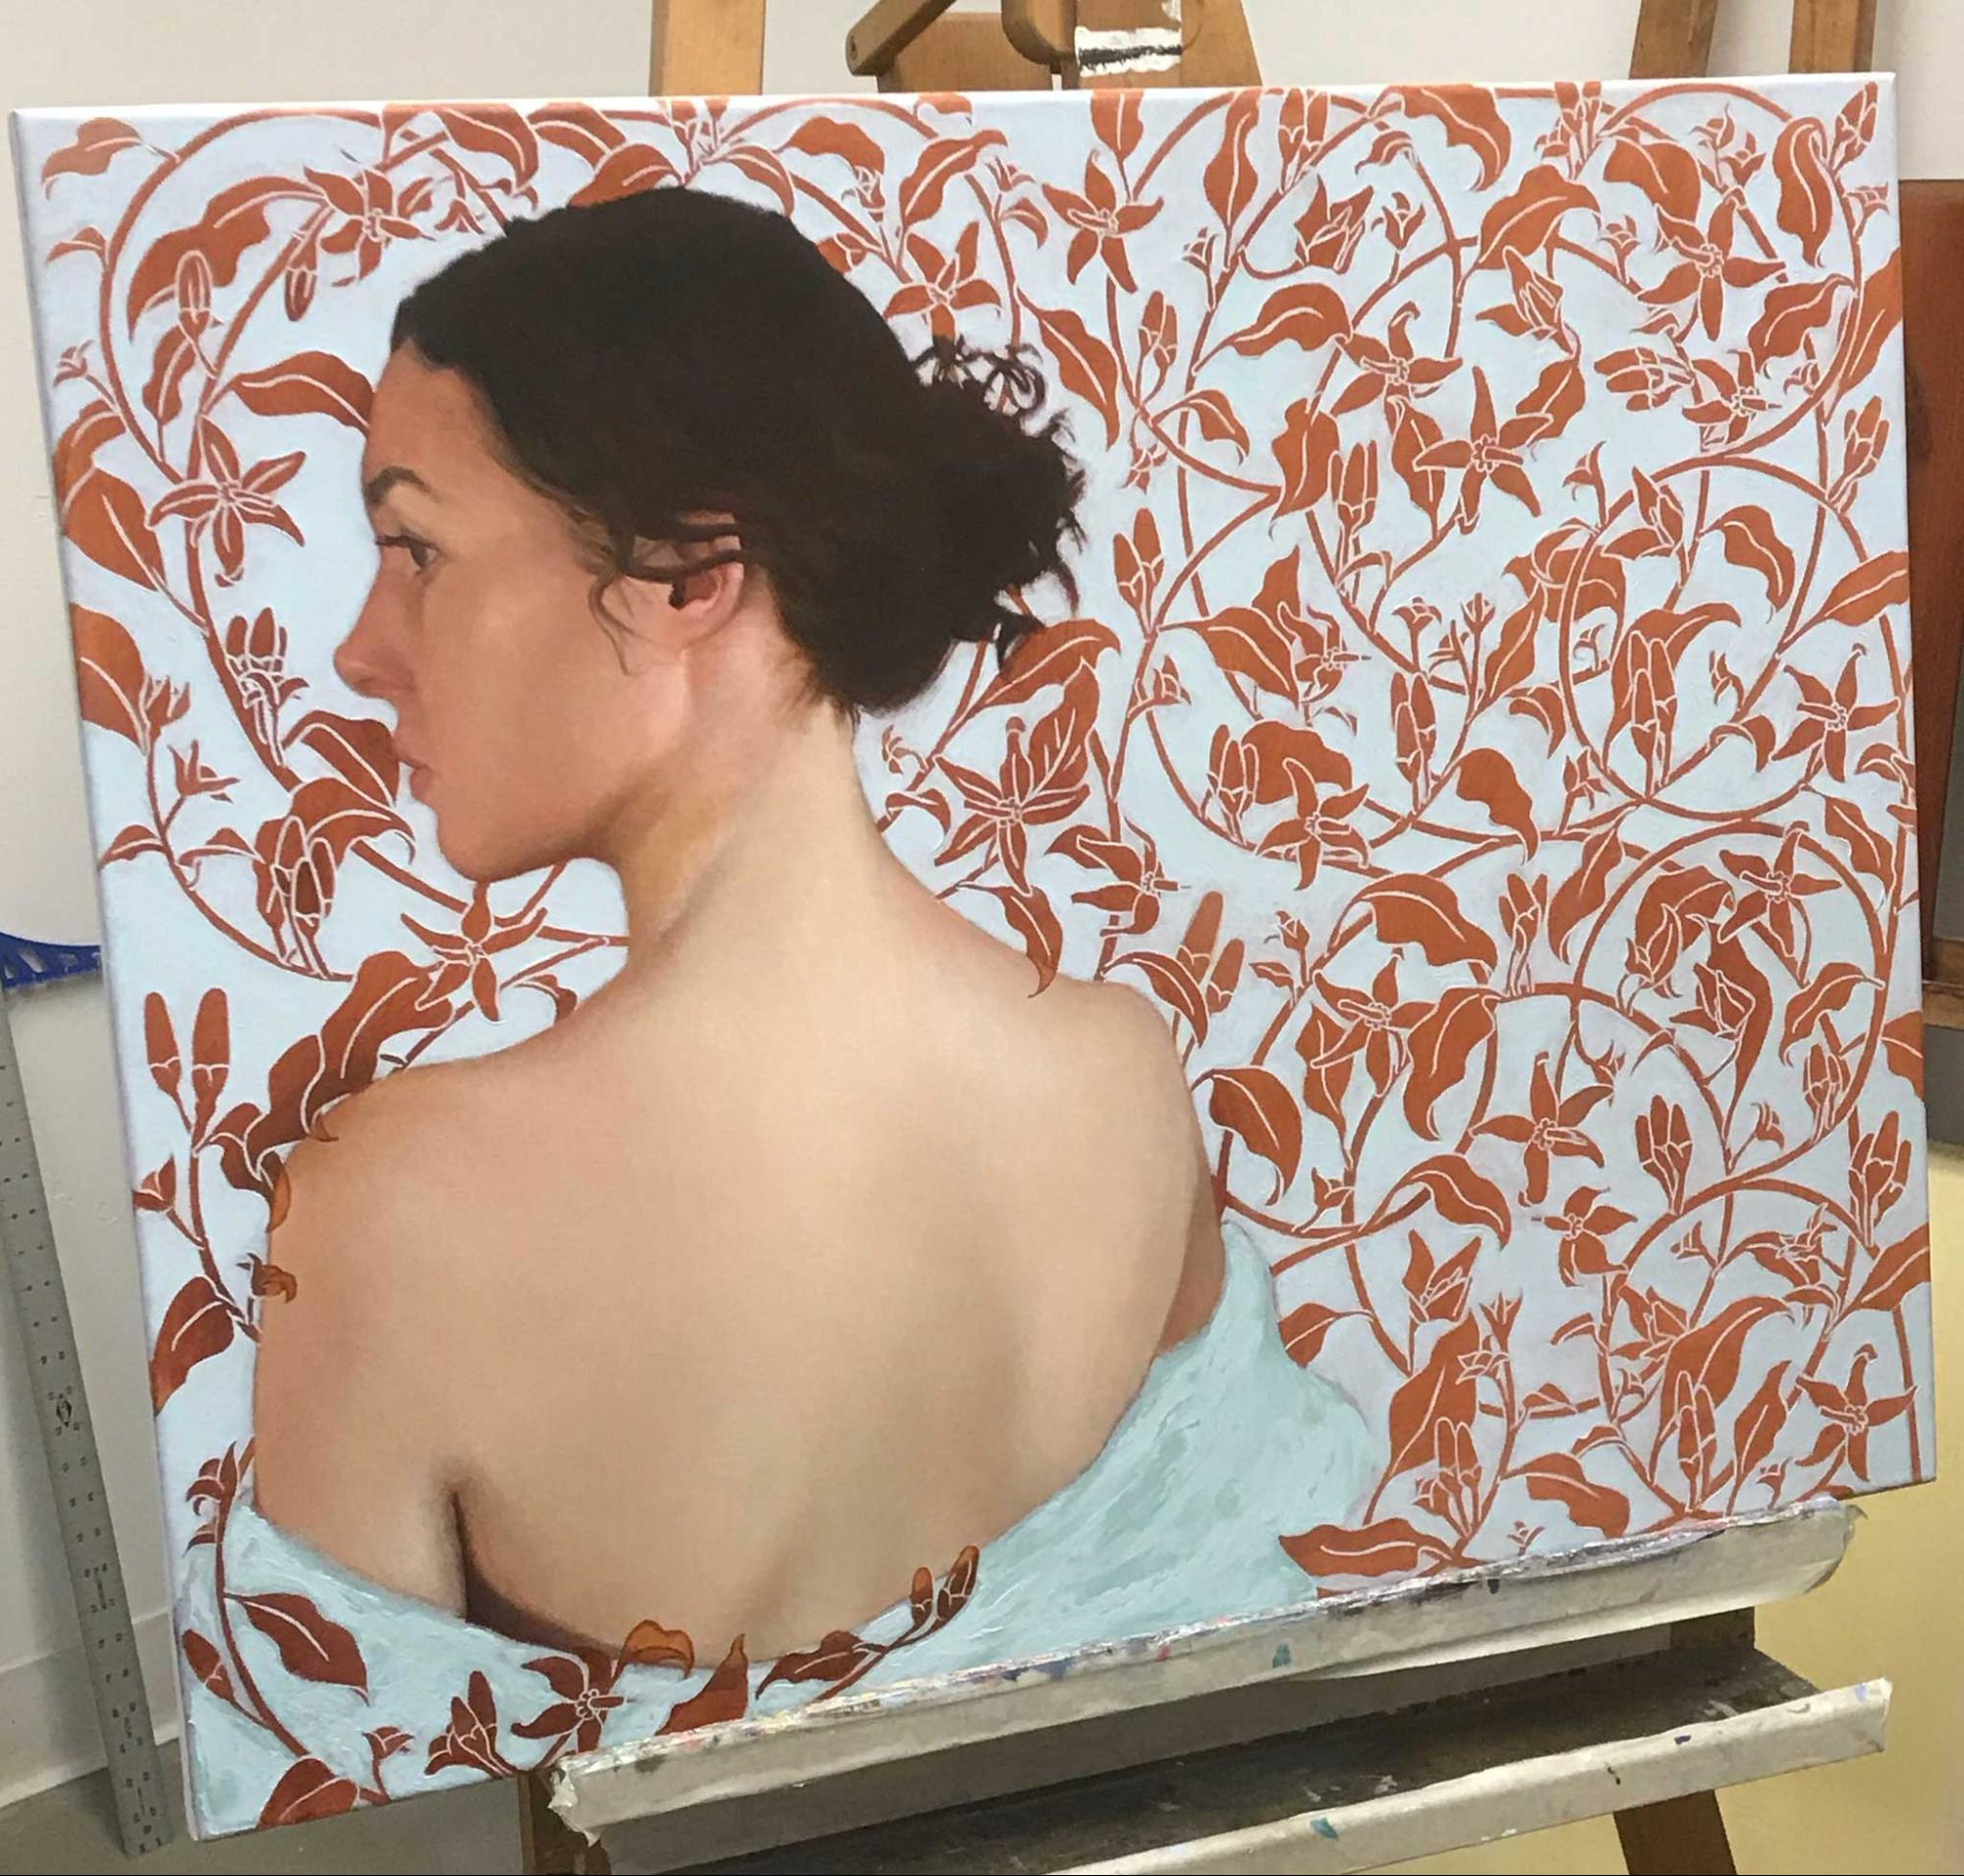 Oil painting step-by-step - Aixa Oliveras - RealismToday.com